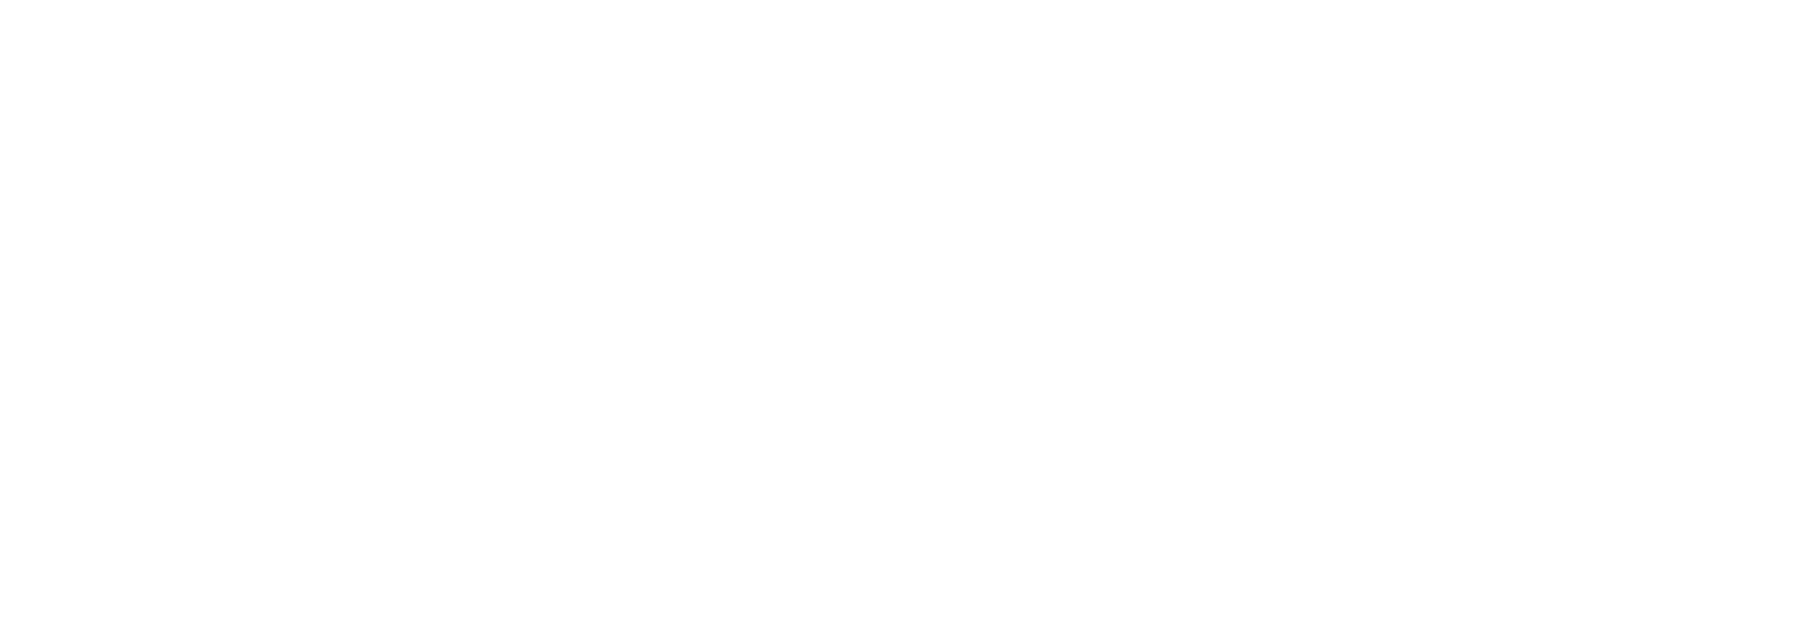 The Root Cellar Home